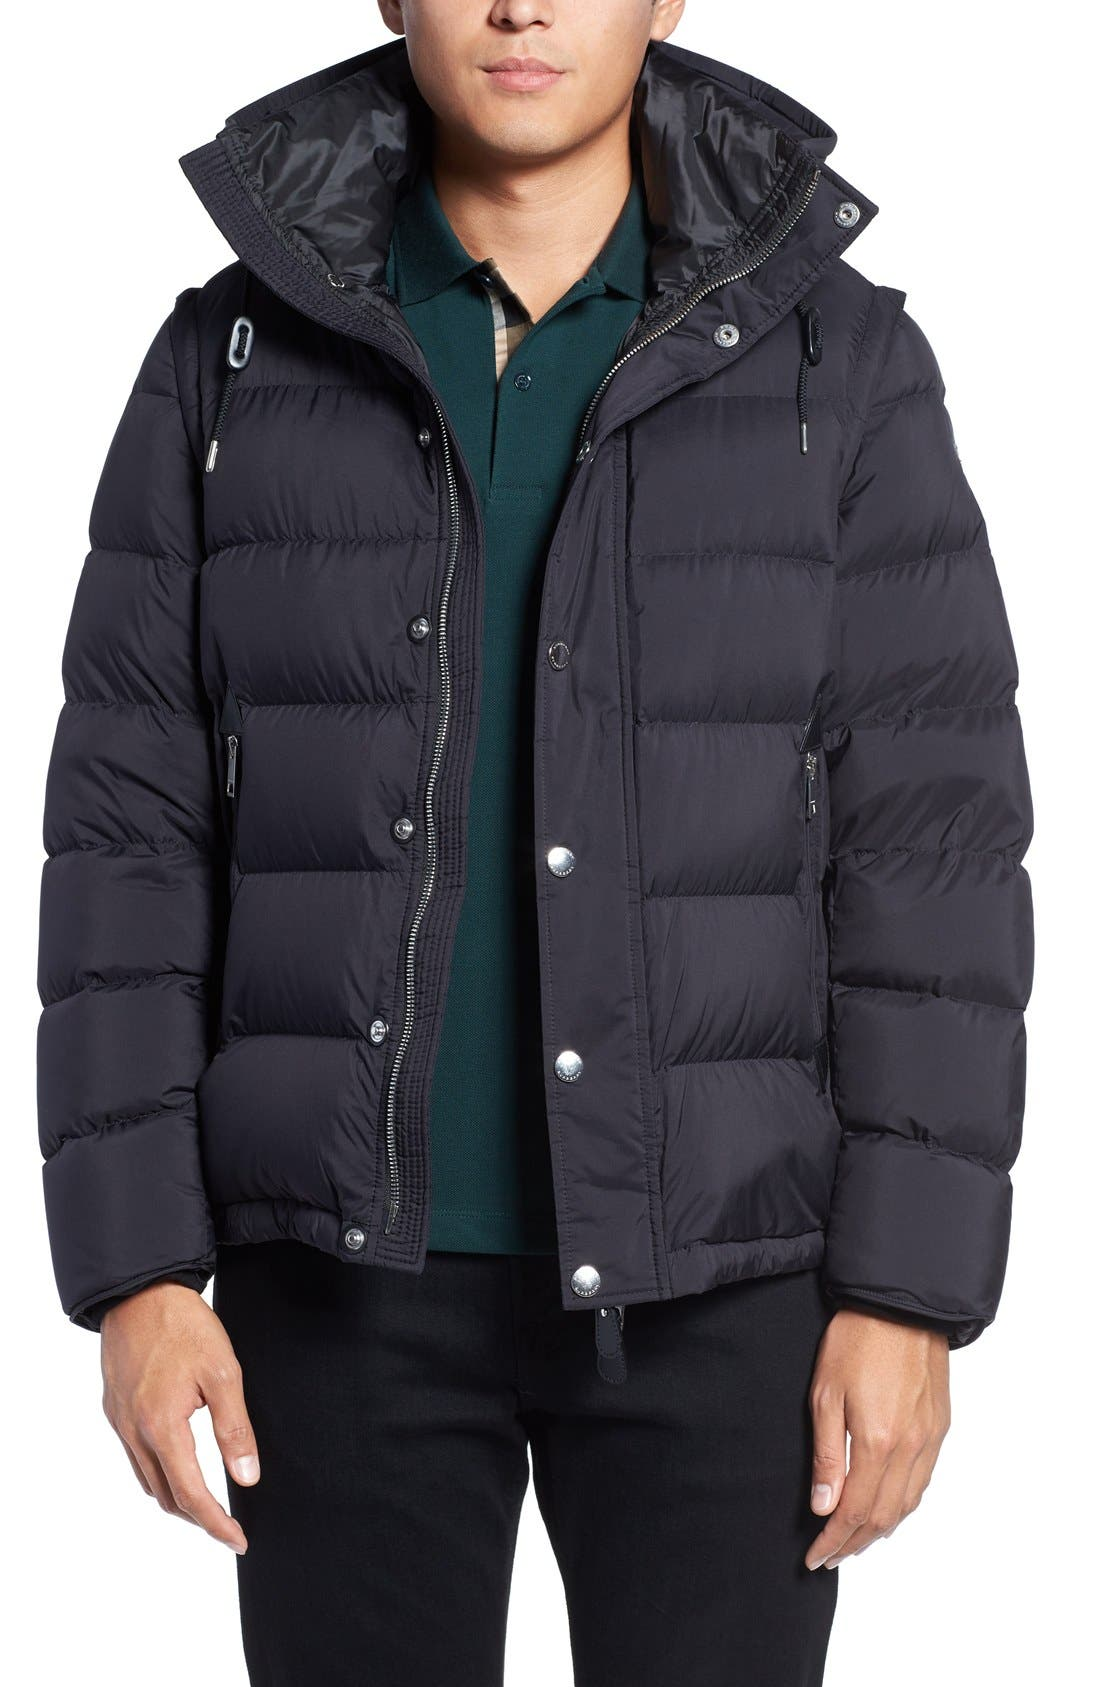 Convertible Quilted Jacket,                             Main thumbnail 1, color,                             Black